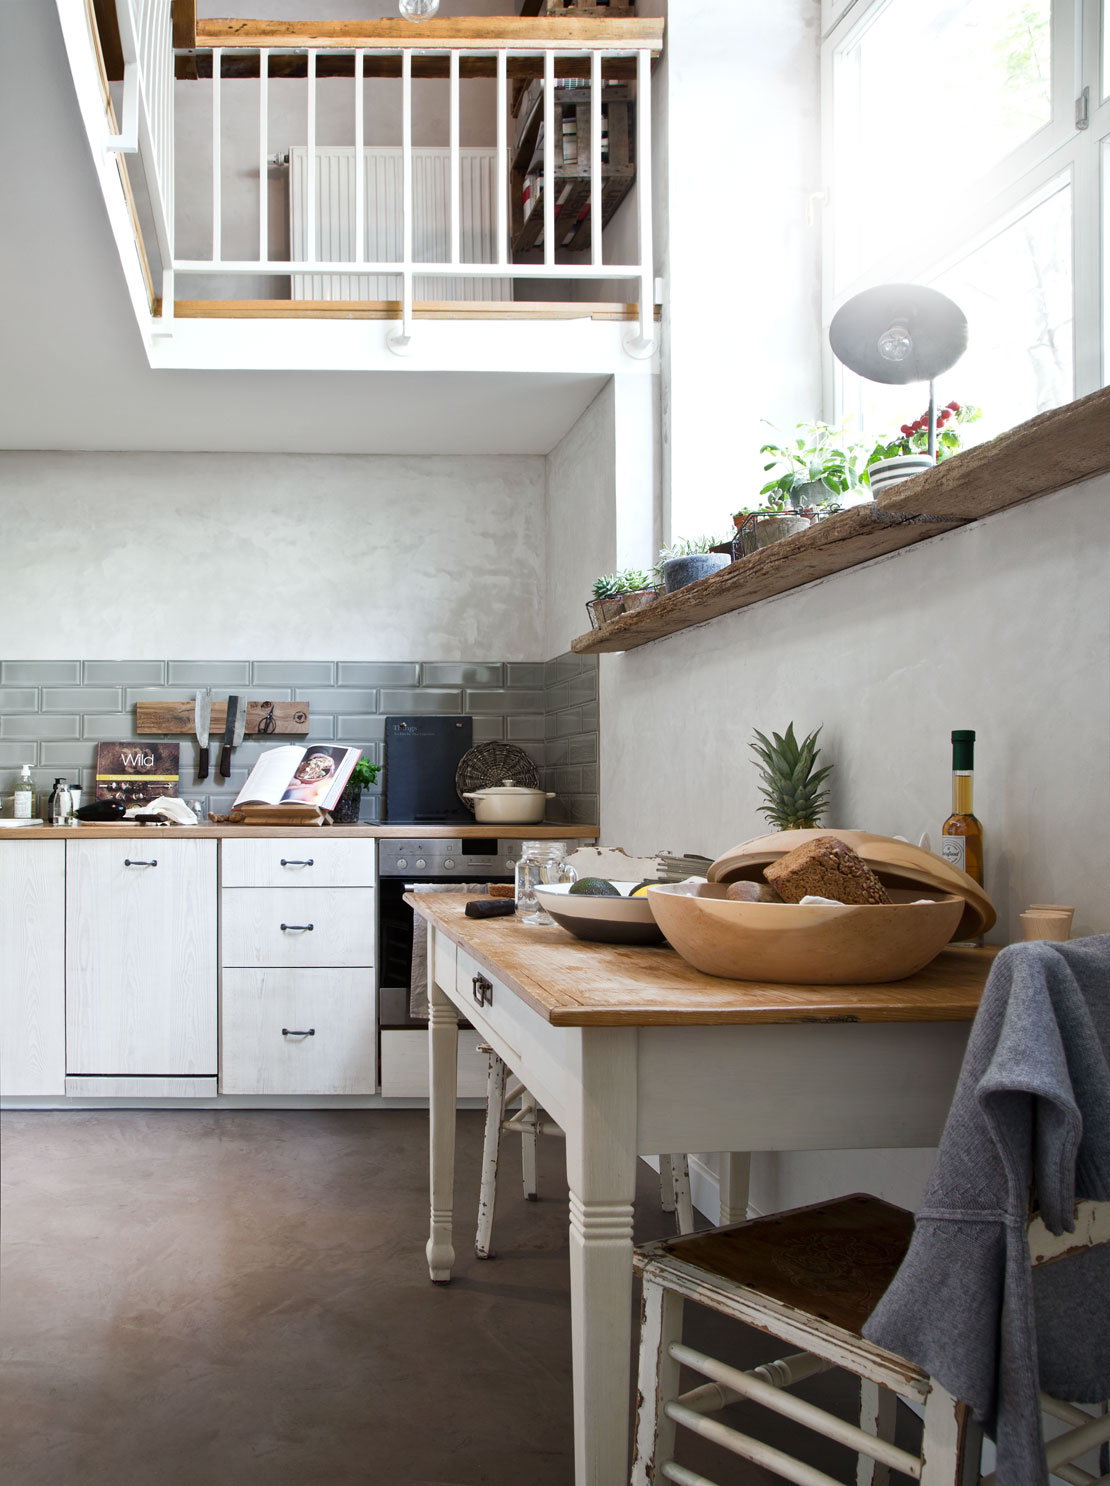 Westwing-Homestories-Marcel-Graf-Barefoot-Living-kitchen